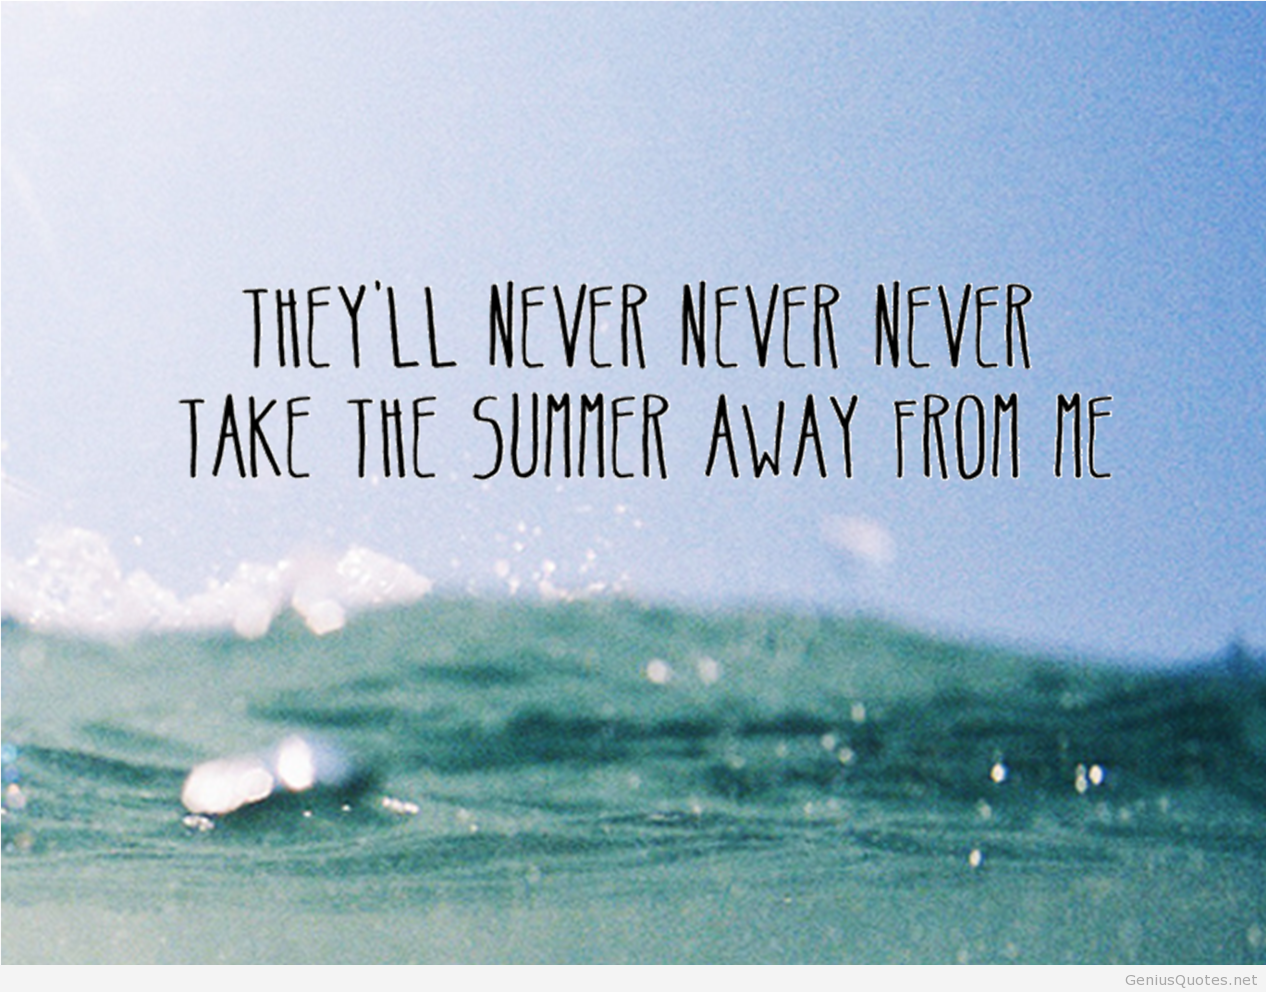 Quotes About Beach In Summer 74 Quotes